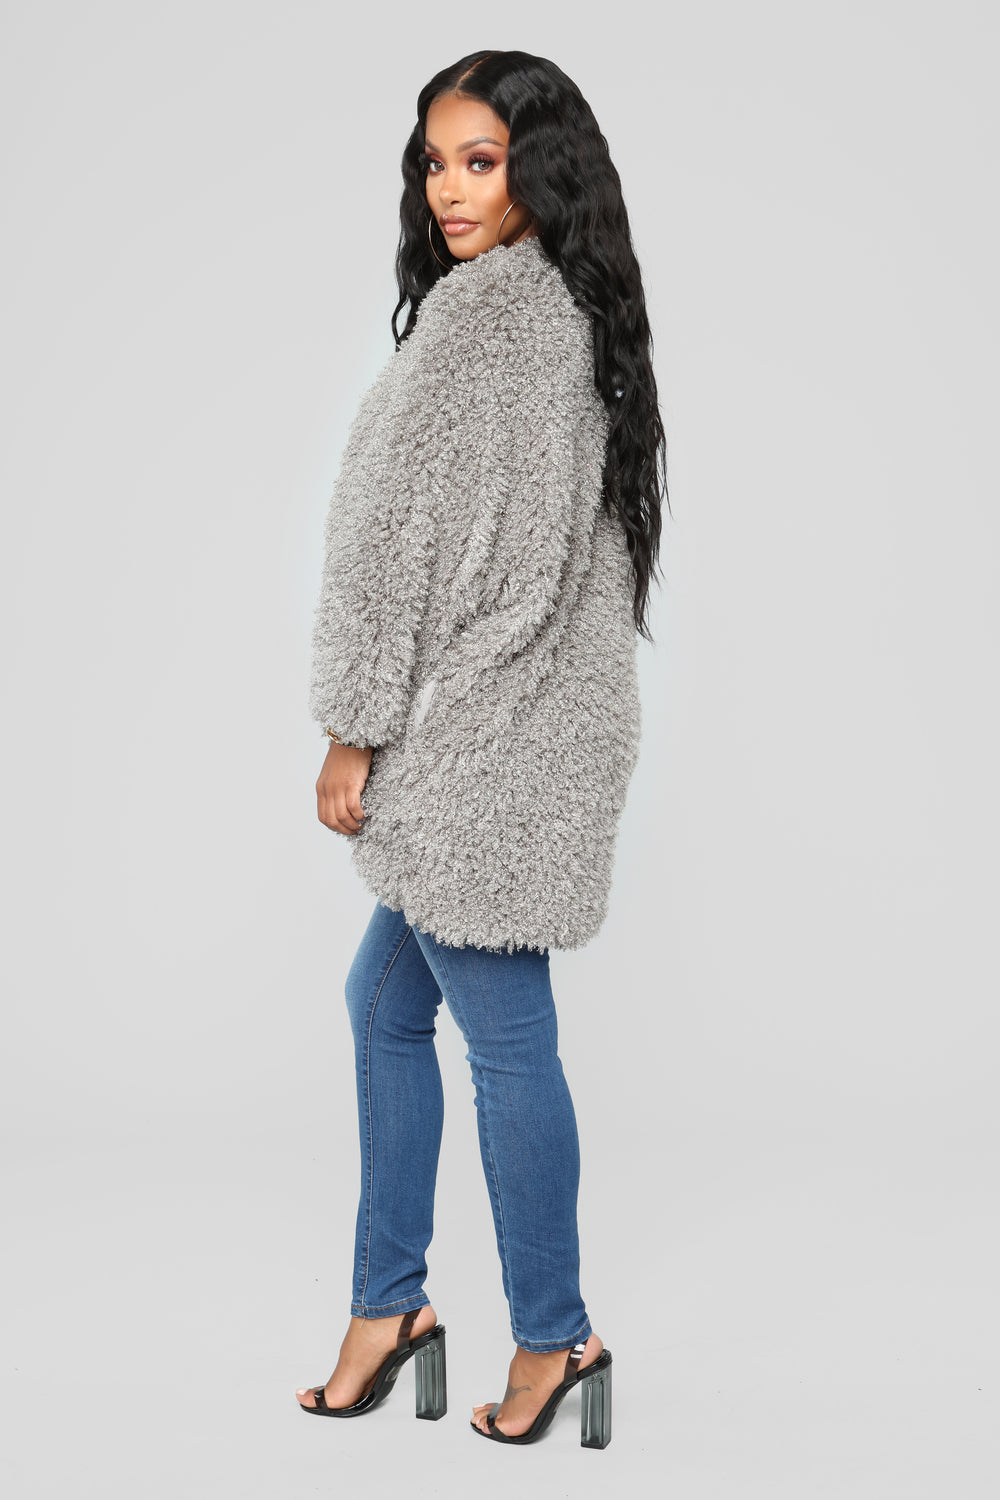 Warm Embrace Faux Fur Jacket - Grey